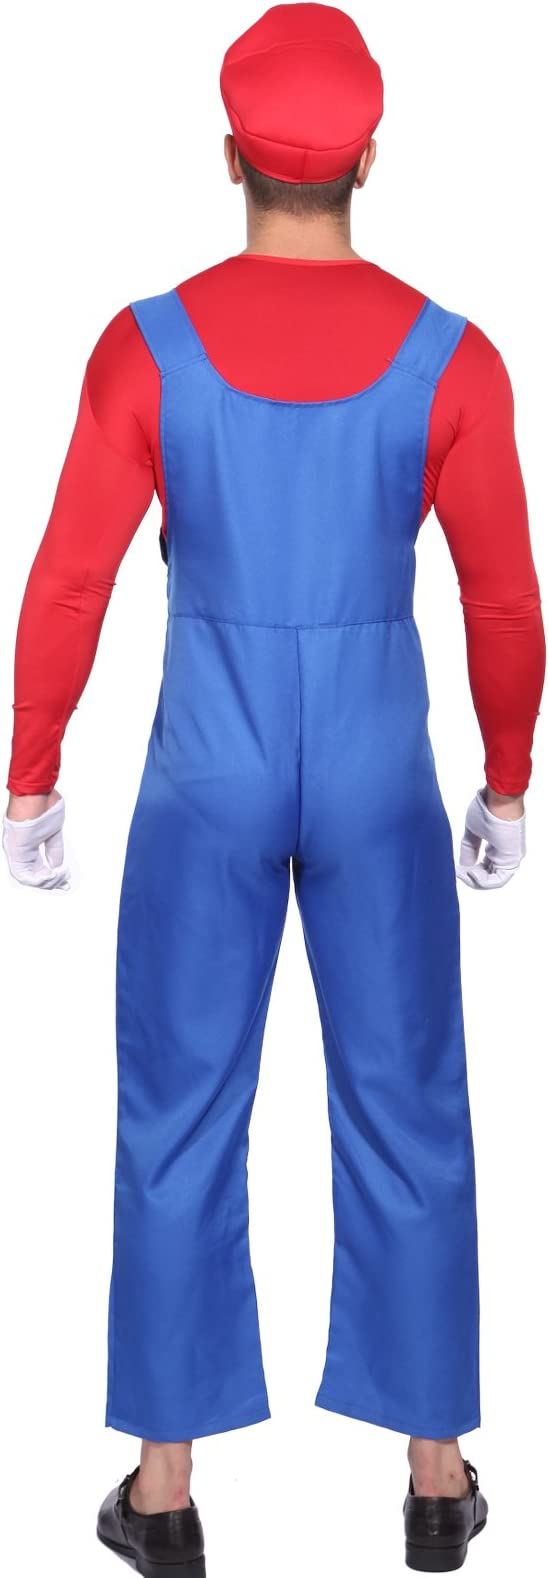 Anladia Disfraz de Mario Bros para Adulto Hombre Cosplay Dress ...